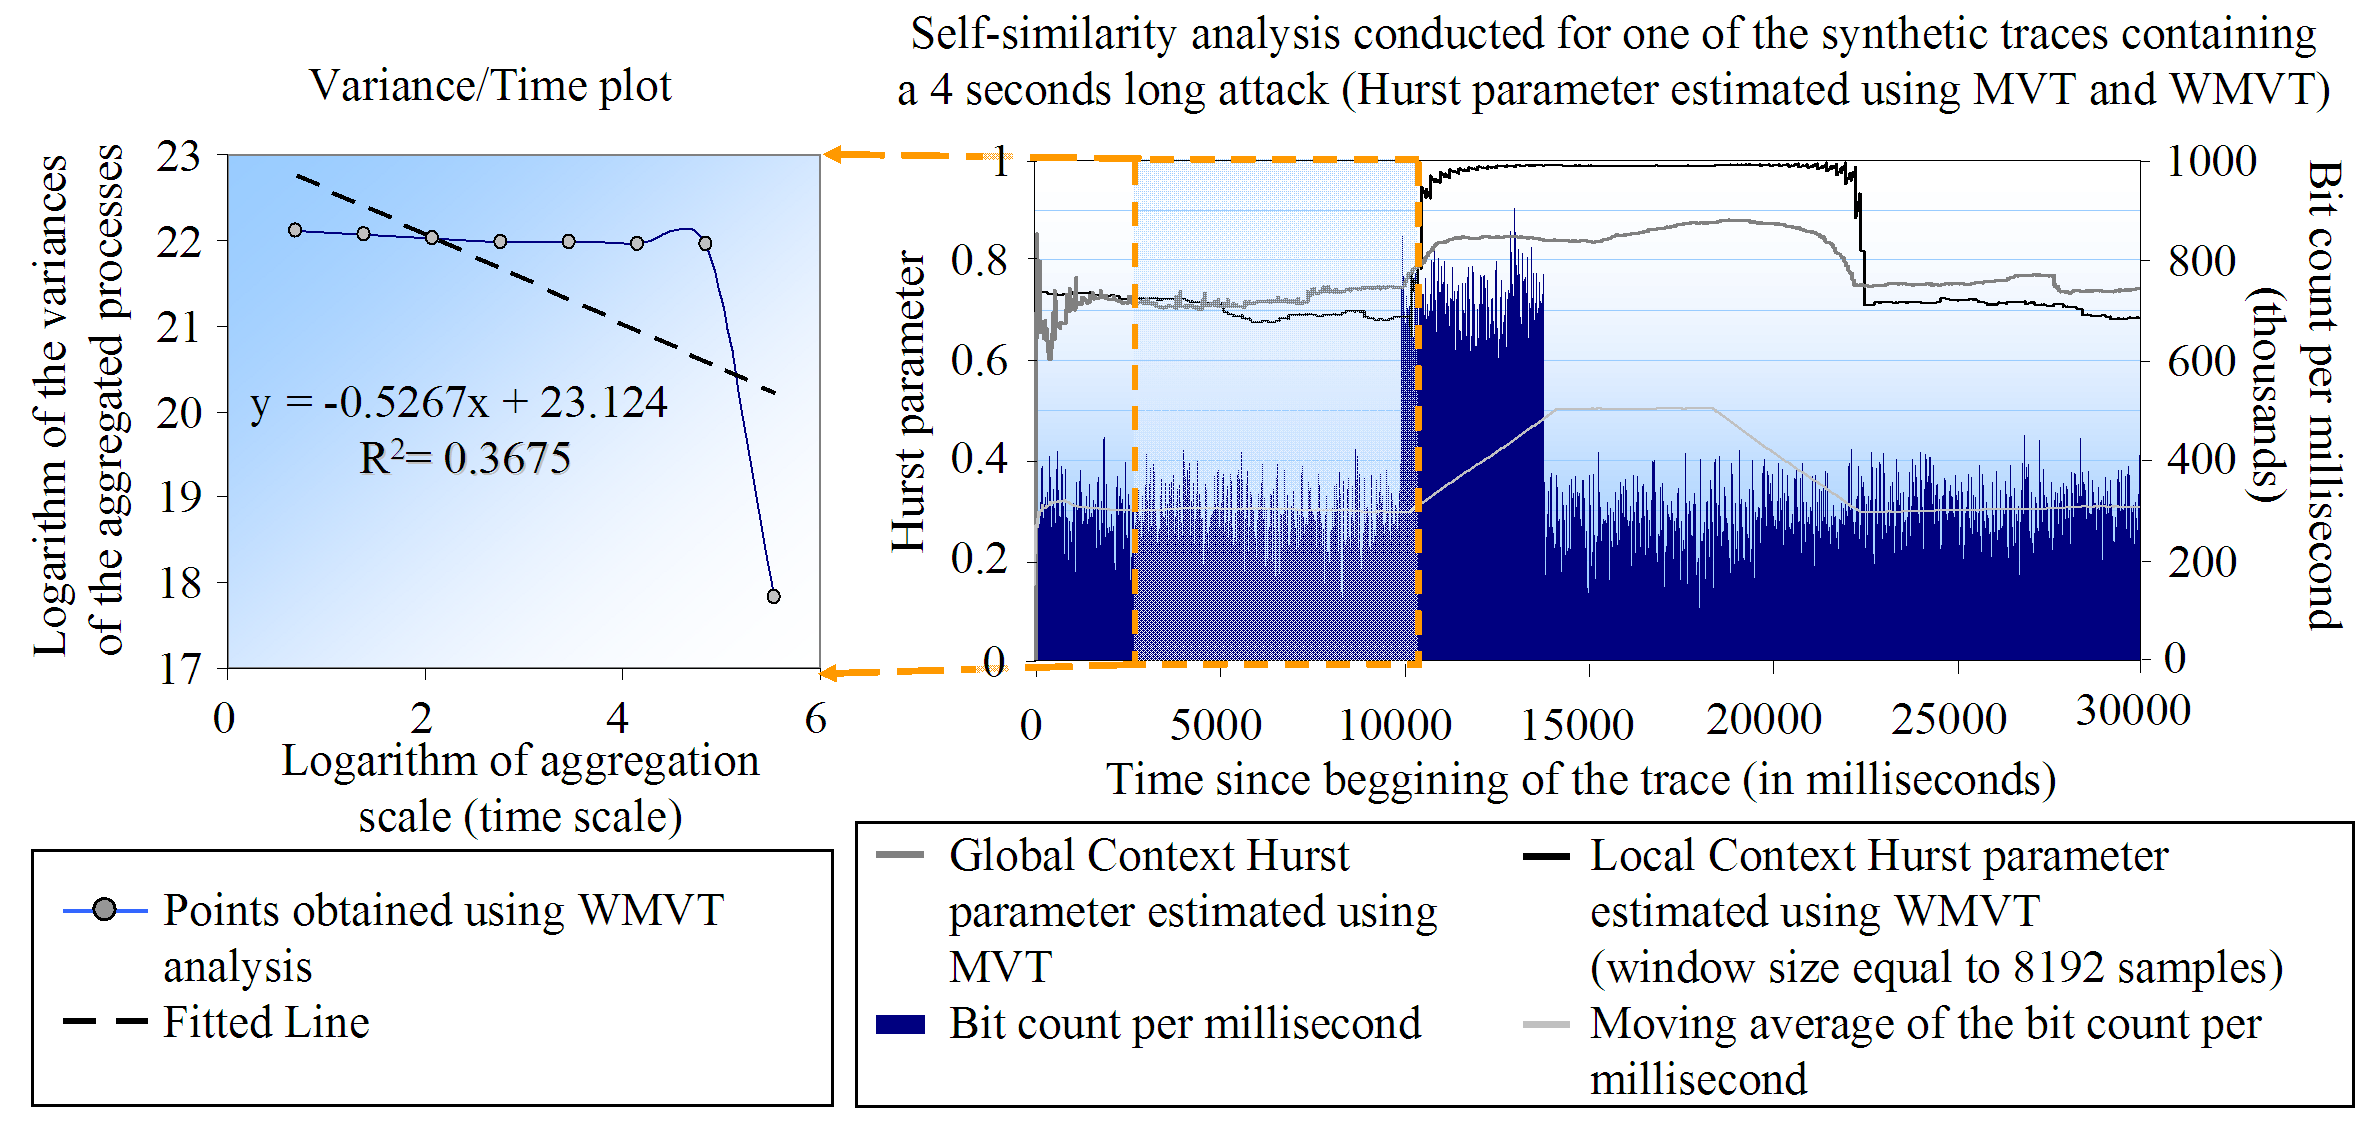 5.5.4. Reaction of the Windowed-Modified Estimators to High Intensity Attacks The network intensive attacks depicted in Figure 5.7 and in Figure 5.